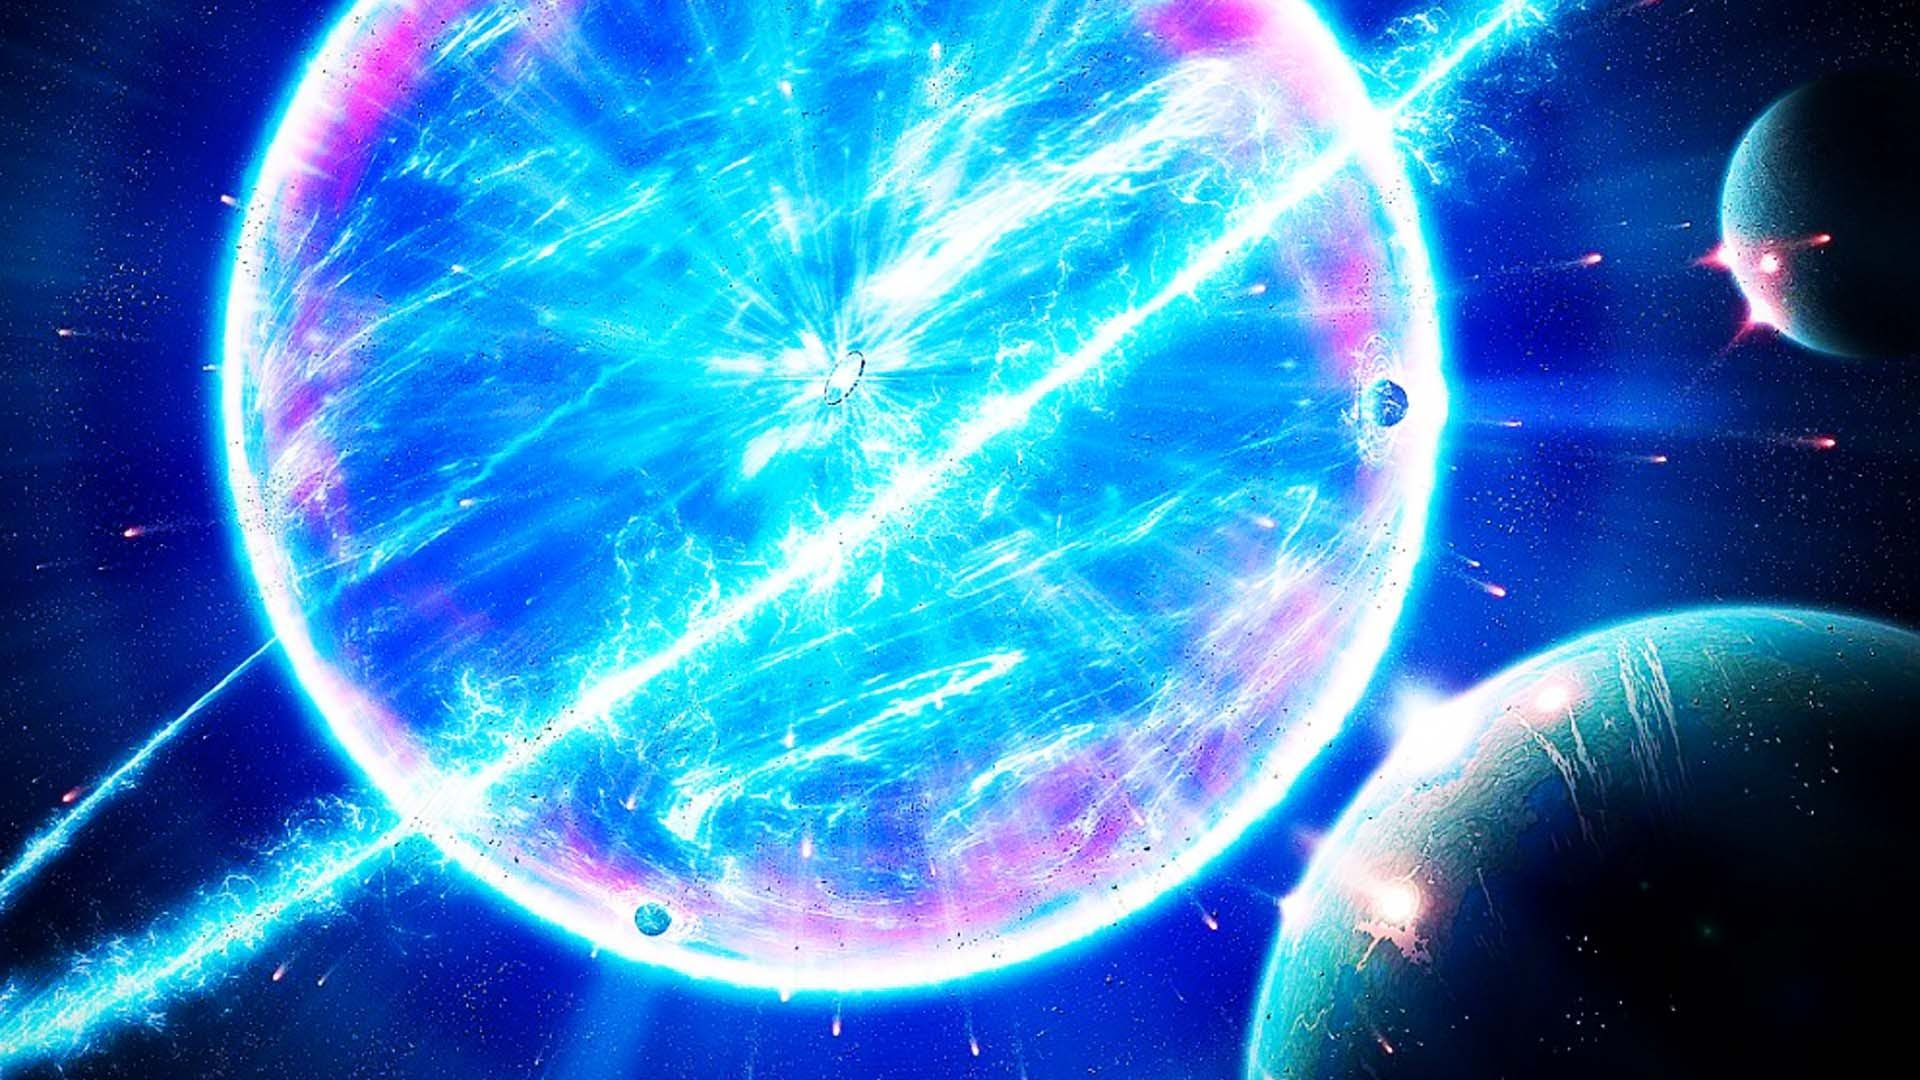 Epic Space Wallpapers - Top Free Epic Space Backgrounds